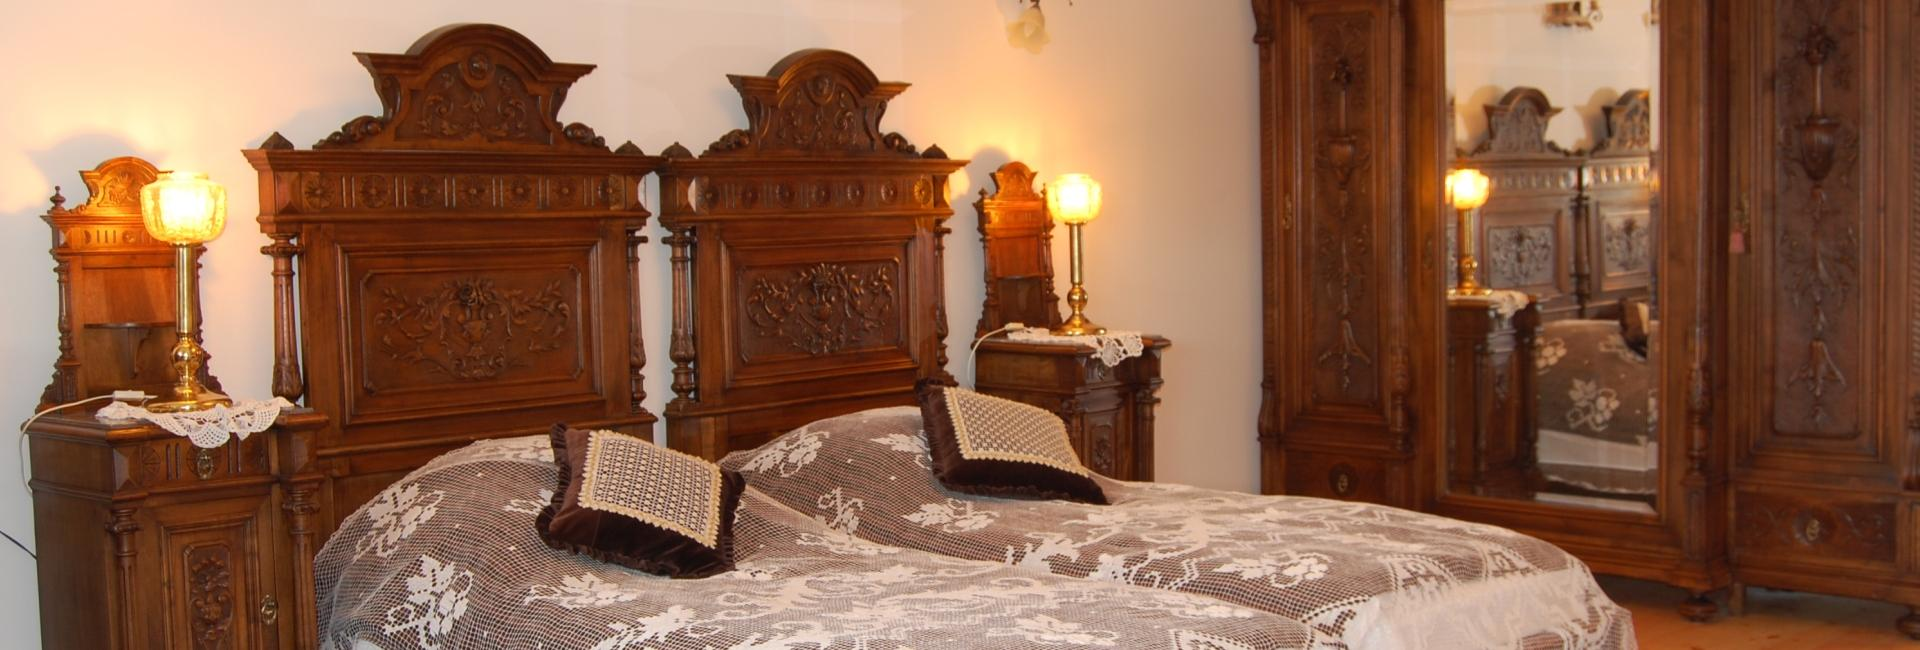 Room at Chotynia Manor House in in Sobolew